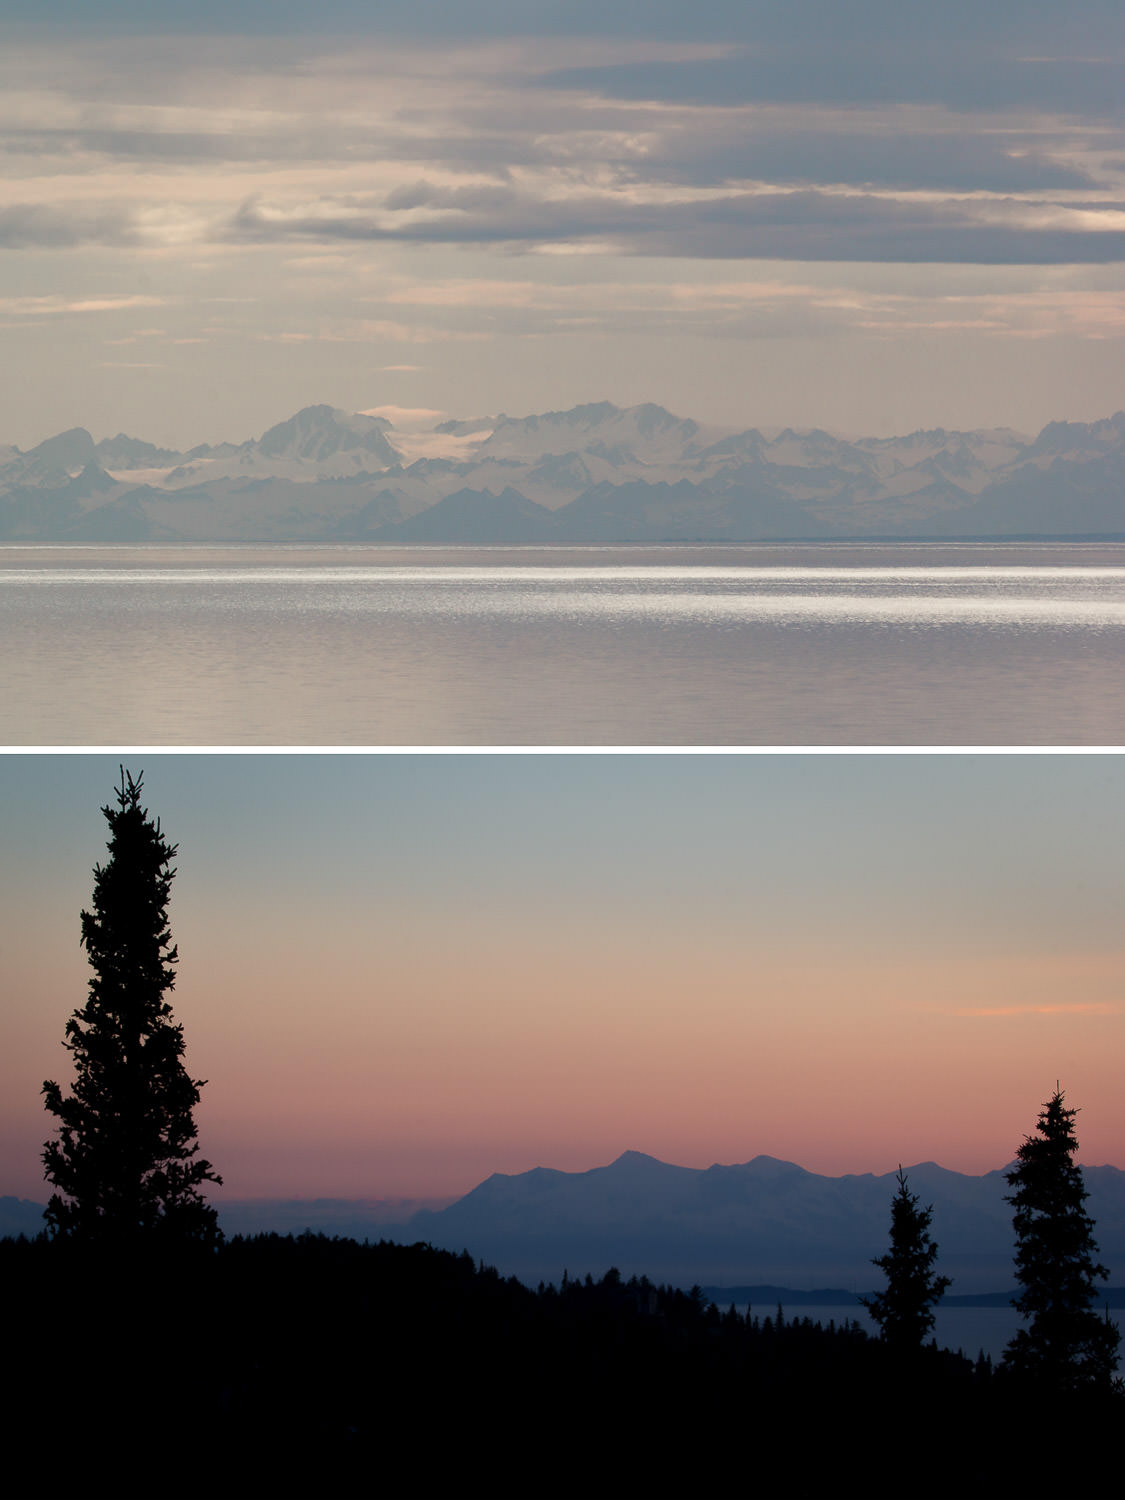 Top: Cook Inlet from the Coastal Trail in downtown Anchorage. Bottom: Cook Inlet from our backyard in Bear Valley. A backyard where a grizzly mom and her two cubs took down a moose two weeks prior to our arrival. Not an especially comforting piece of information to learn from our neighbors the day we moved in. Since then bears have been out of sight, but never altogether out of mind.